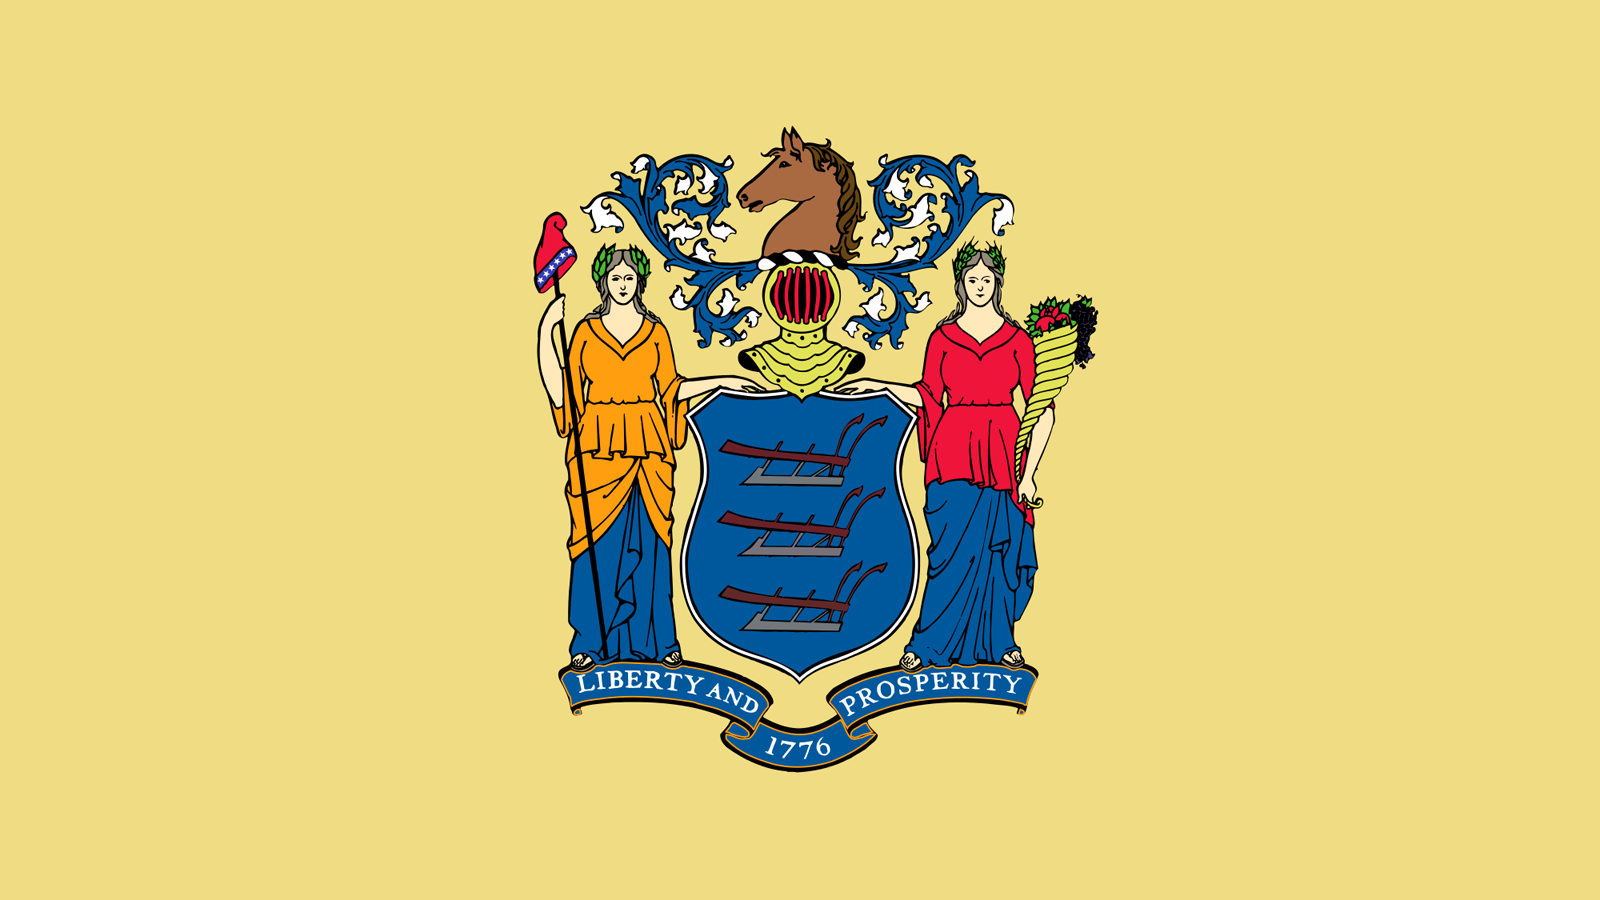 VICTORY! New Jersey Governor Signs Bipartisan Legislation Removing Roadblocks for Transgender People